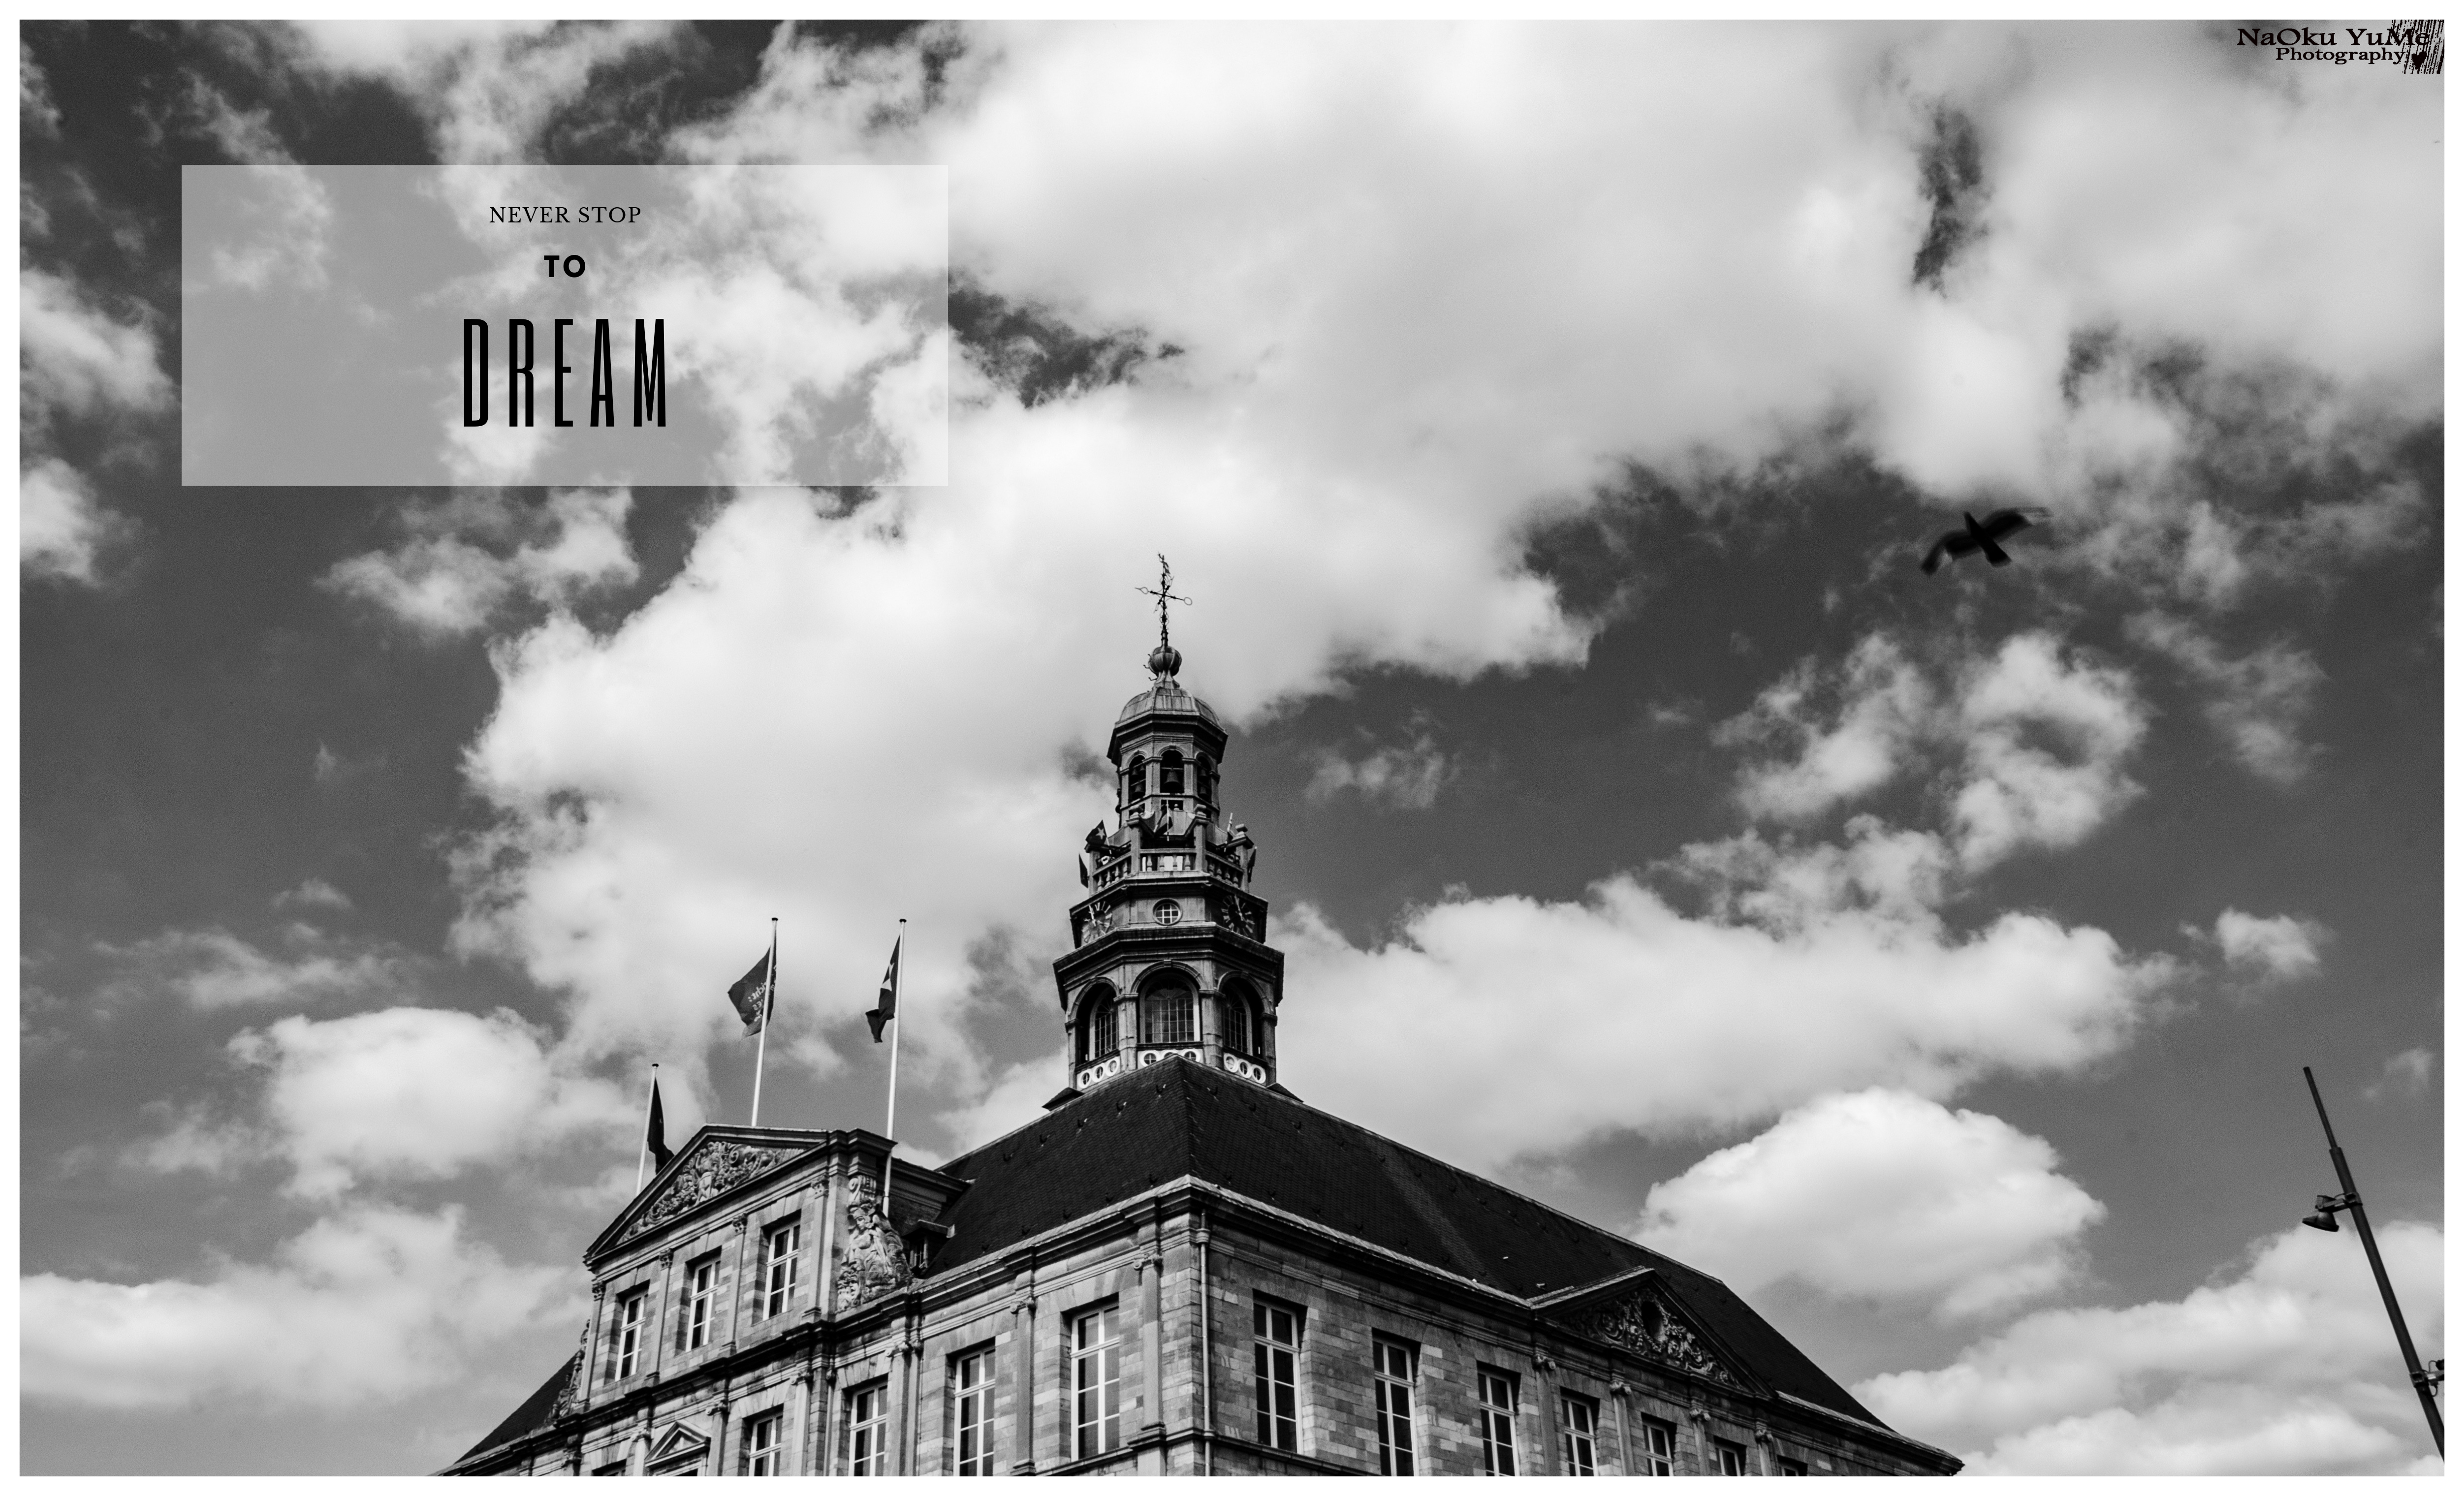 A black and white photo with a building and a sky